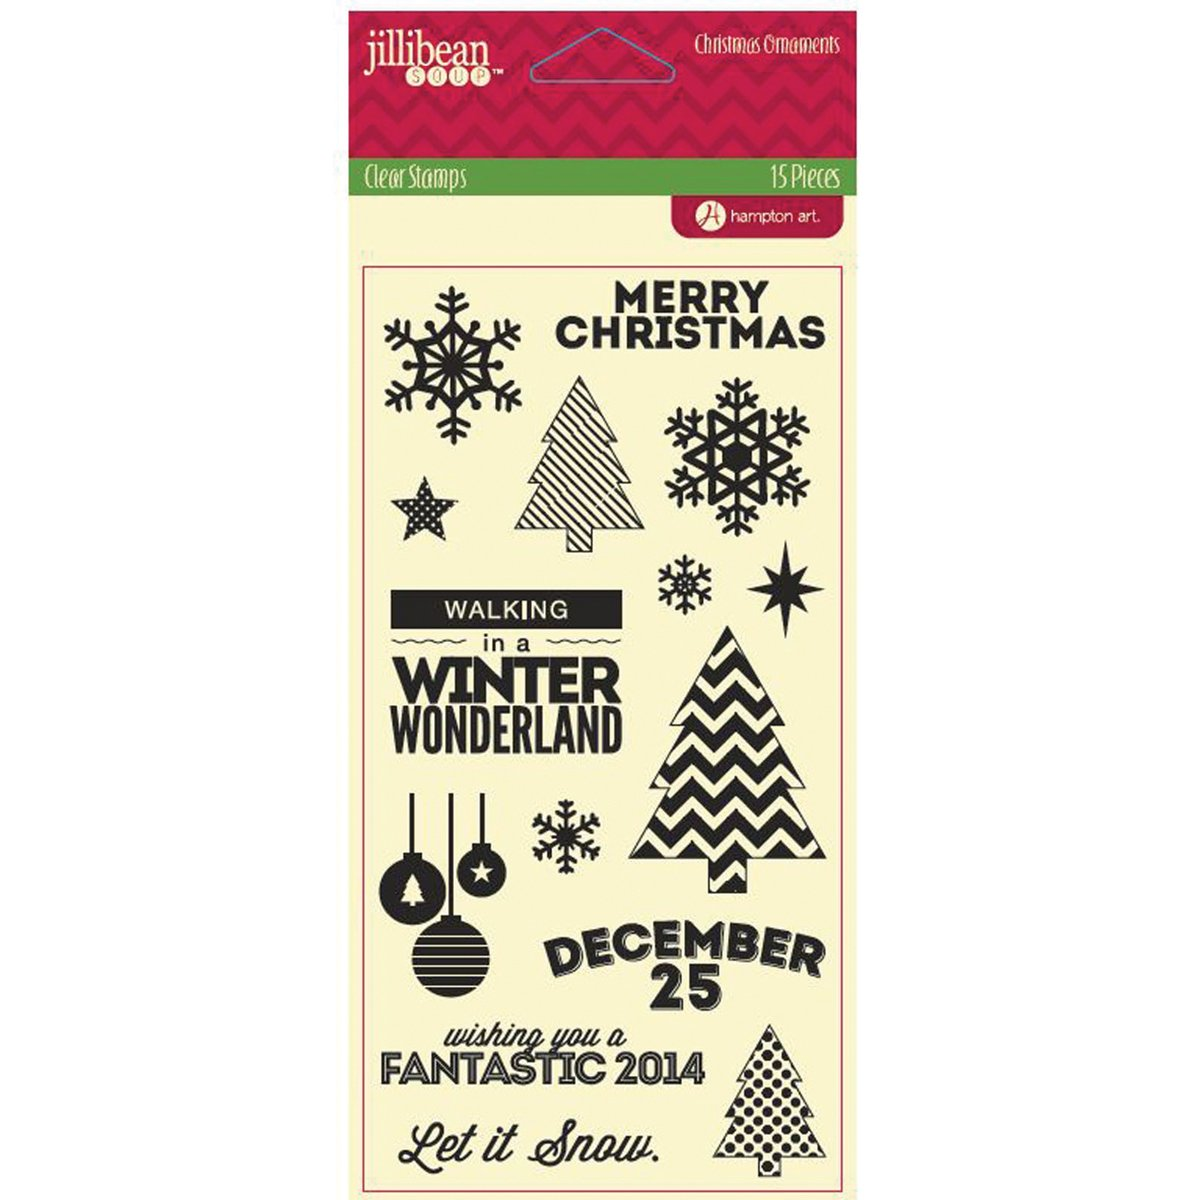 Hampton Art Jillibean 8-Inch, Soup Stamp, 4 by 8-Inch, Jillibean Christmas Ornaments, Clear by Hampton Art feabcc